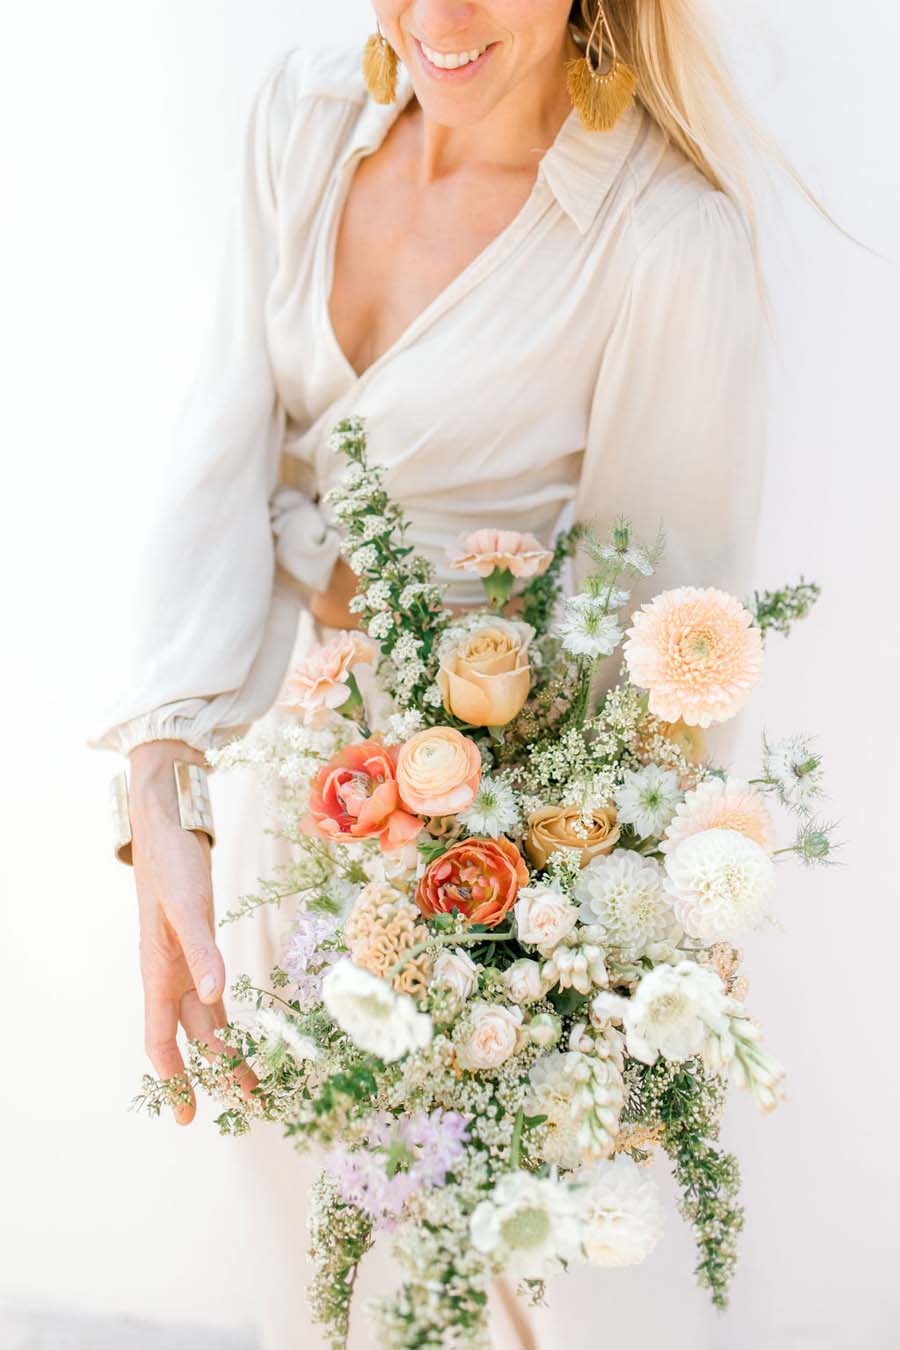 nectarandbloomfloral.com | Nectar and Bloom Floral Design | Pine and Sea Photography | San Diego Wedding and Event Florist  | Mentor Sessions for Florists  (19).jpg